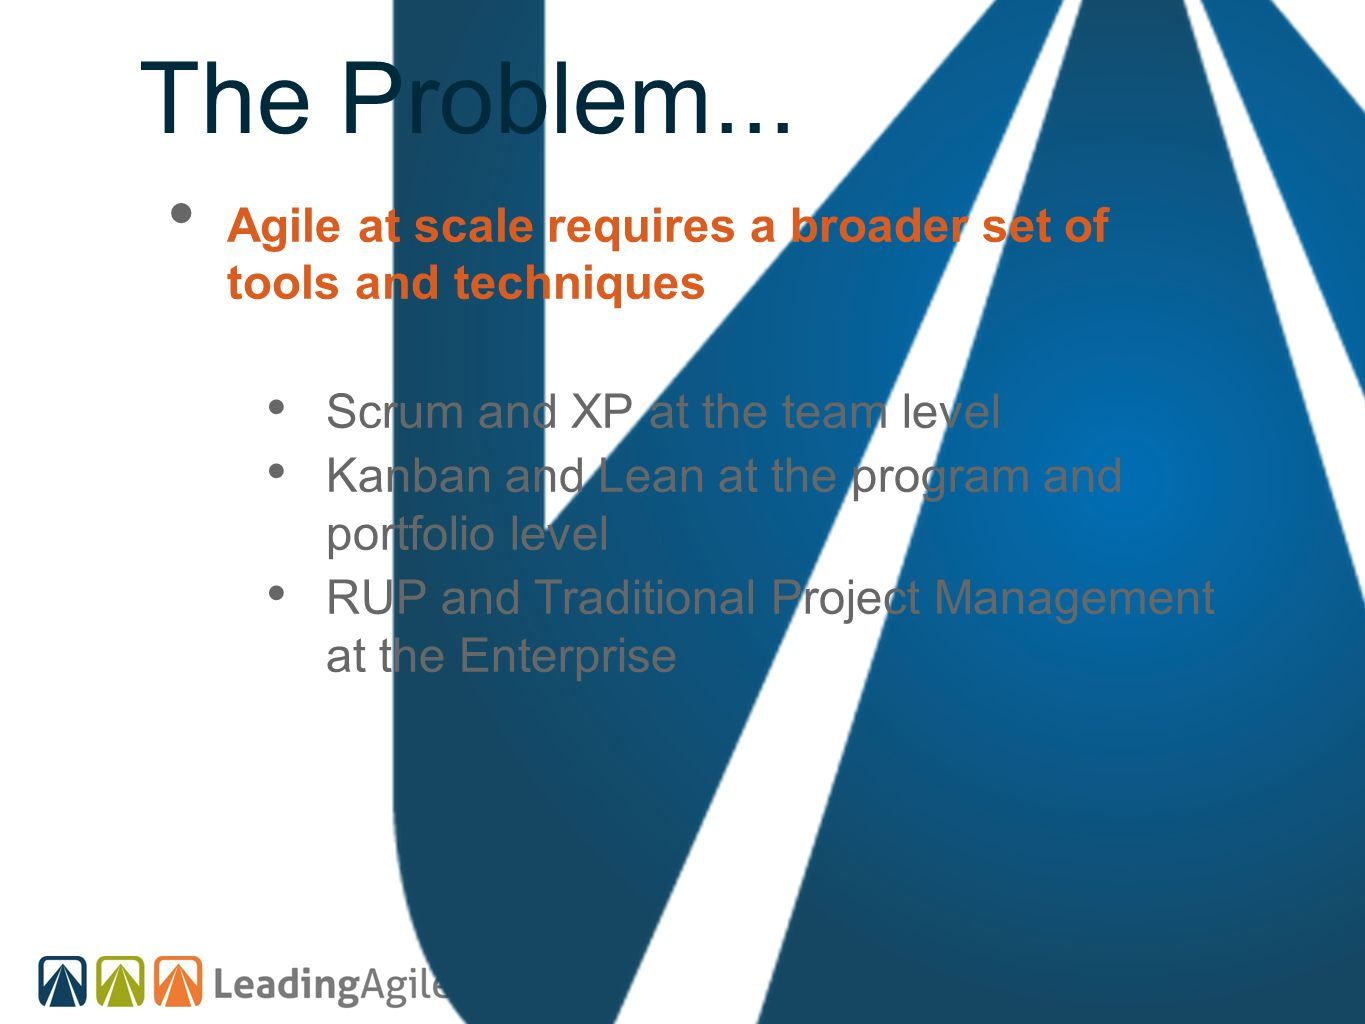 The Problem... Agile at scale requires a broader set of tools and techniques. Scrum and XP at the team level.